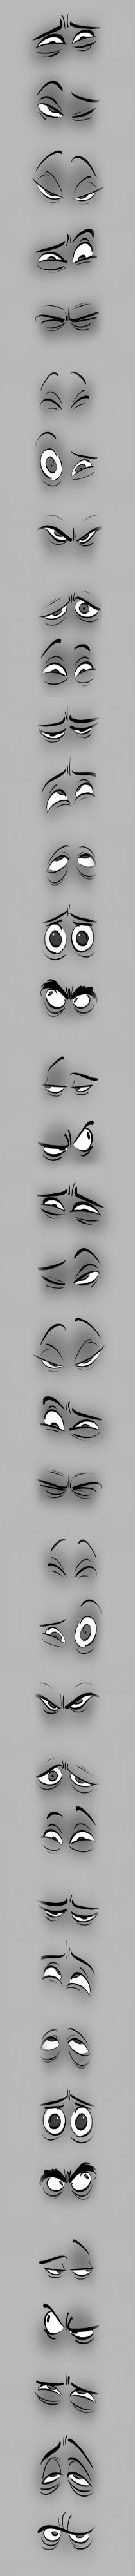 """""""I Only Have Eyes For You """" Drawing Exercise Art Drawing Tips 